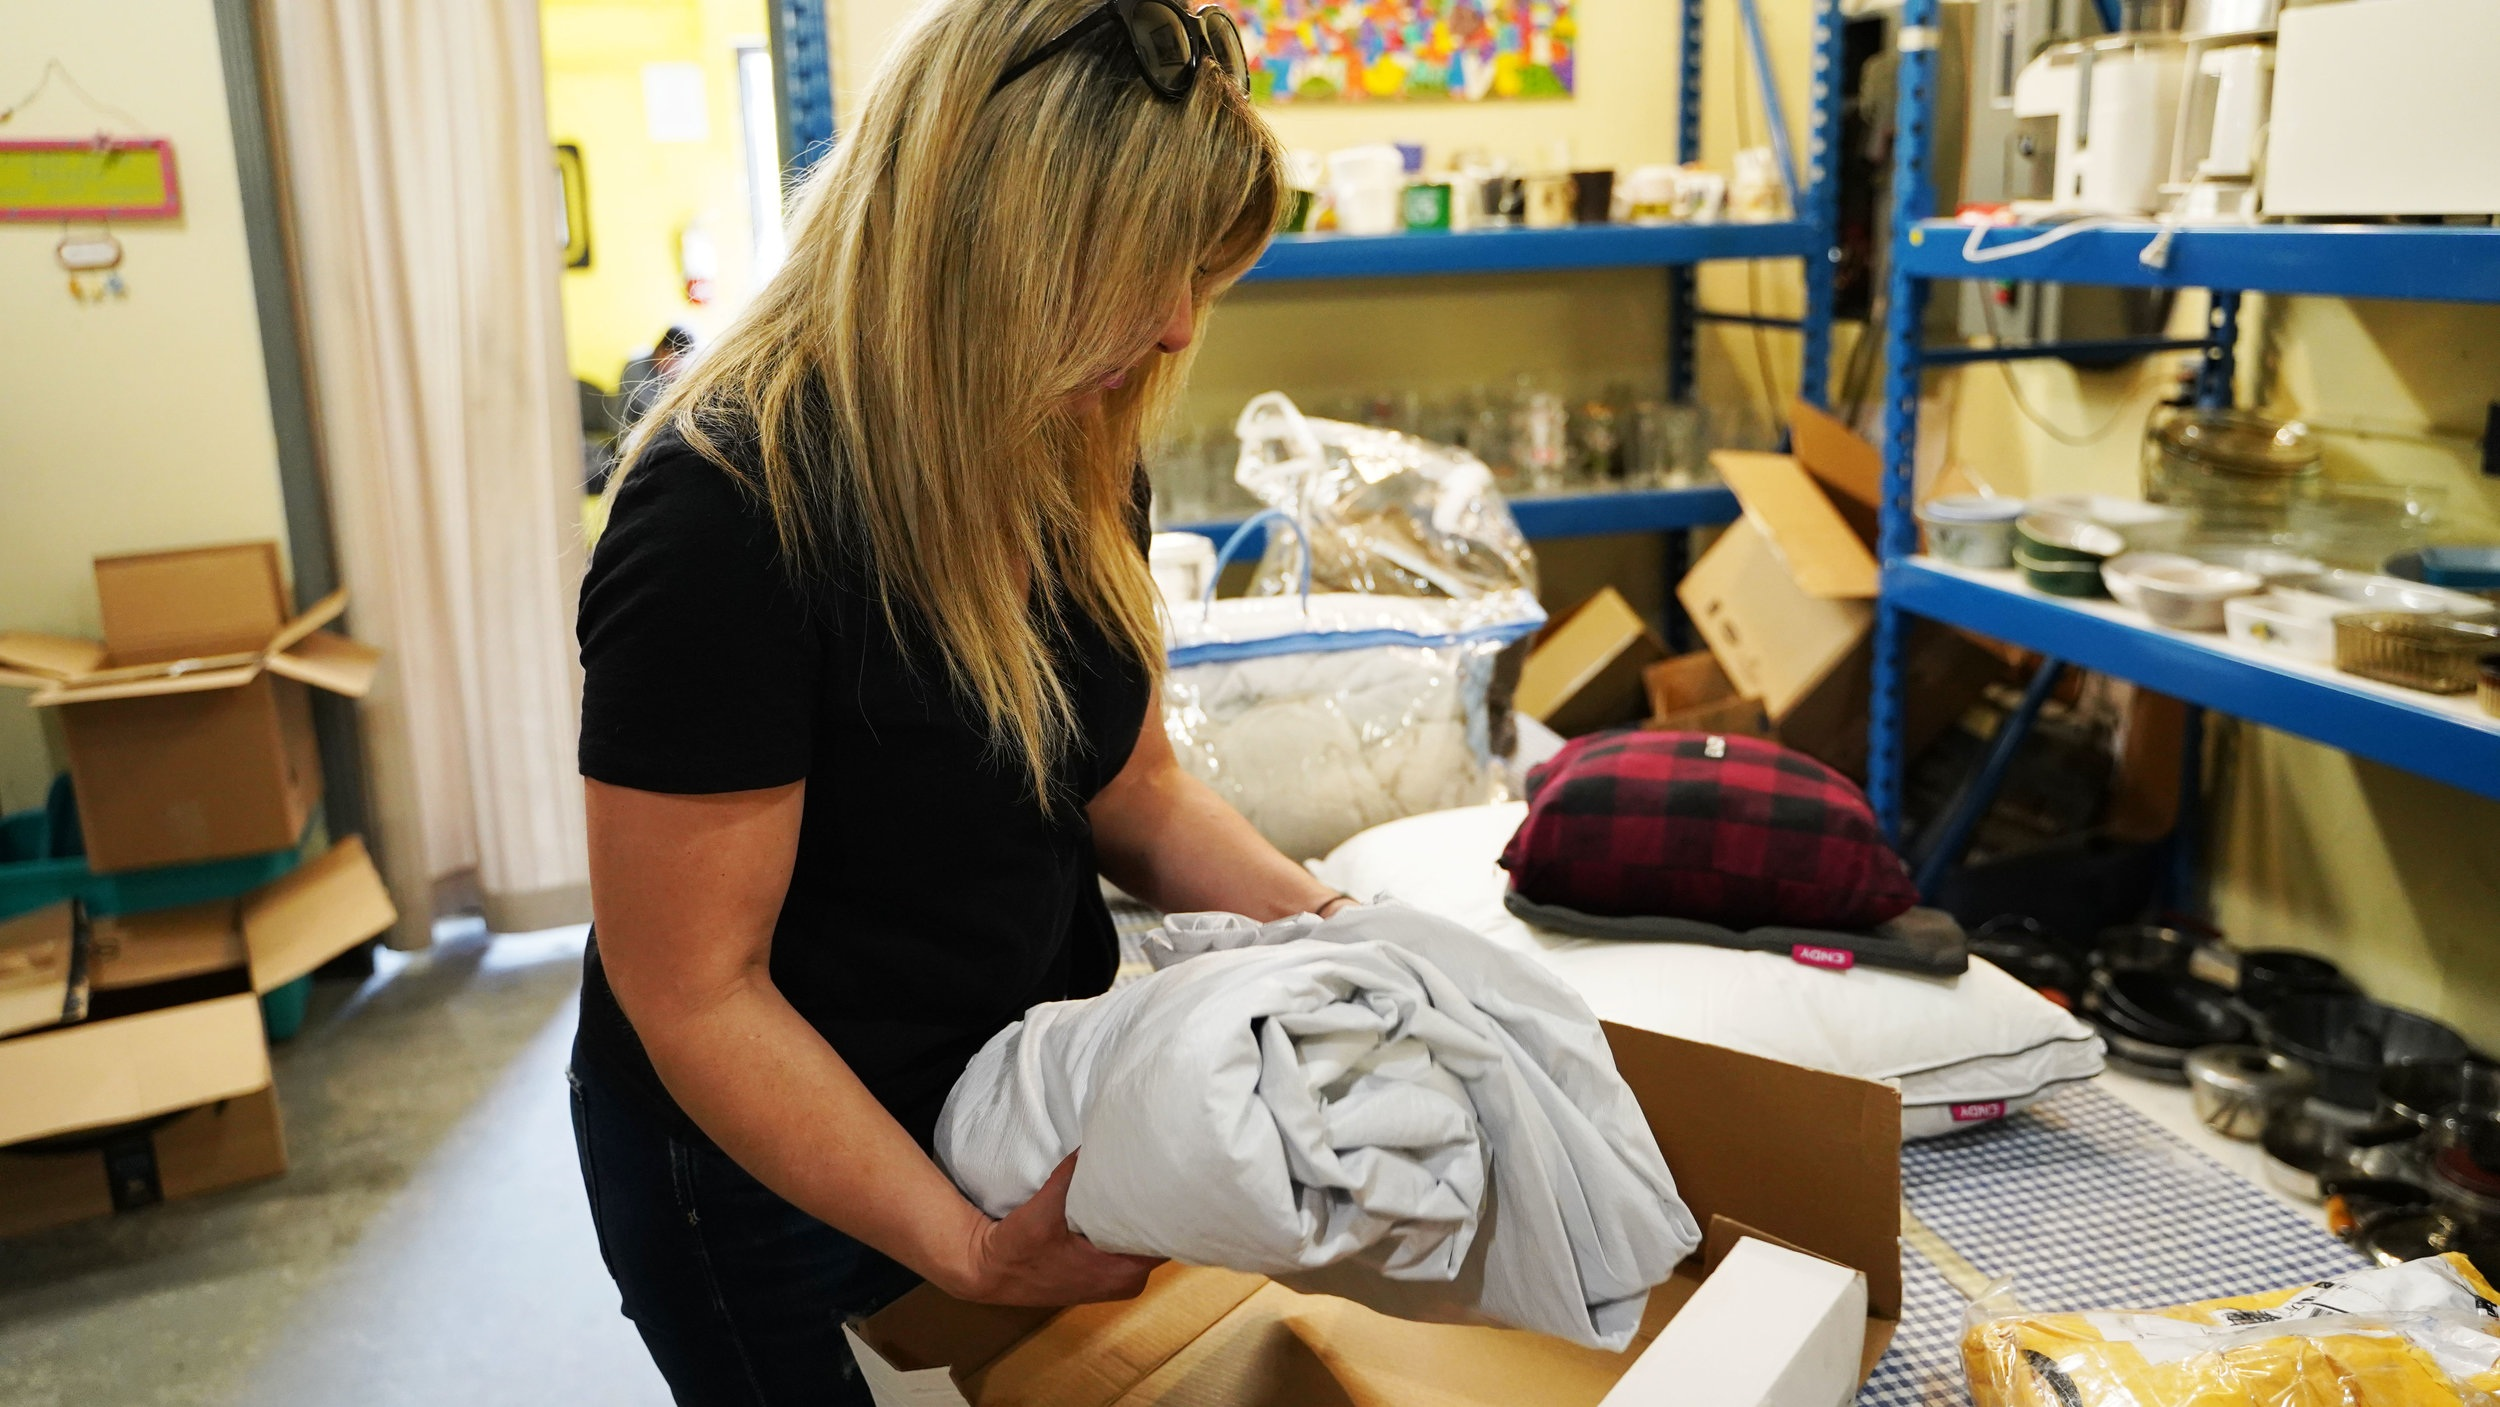 Loukia Zigoumis packaging up Endy Sheets for a family.